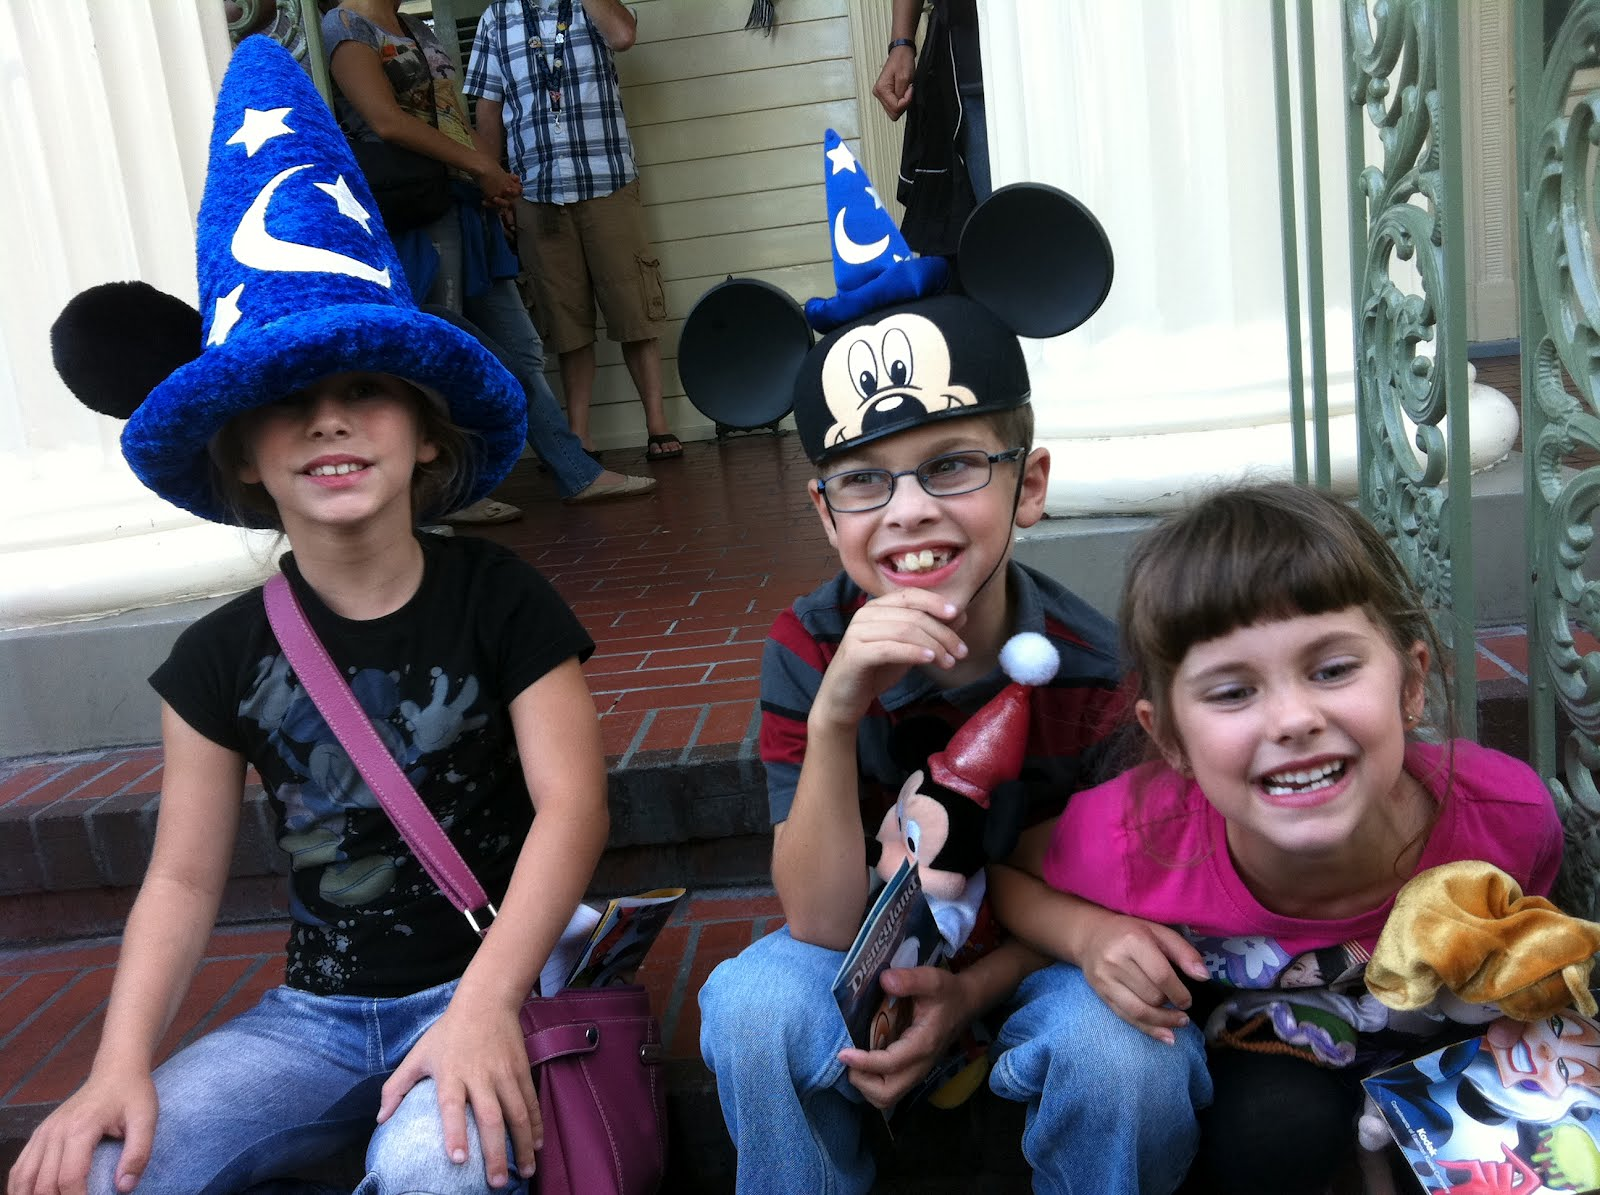 The Kids at Disneyland